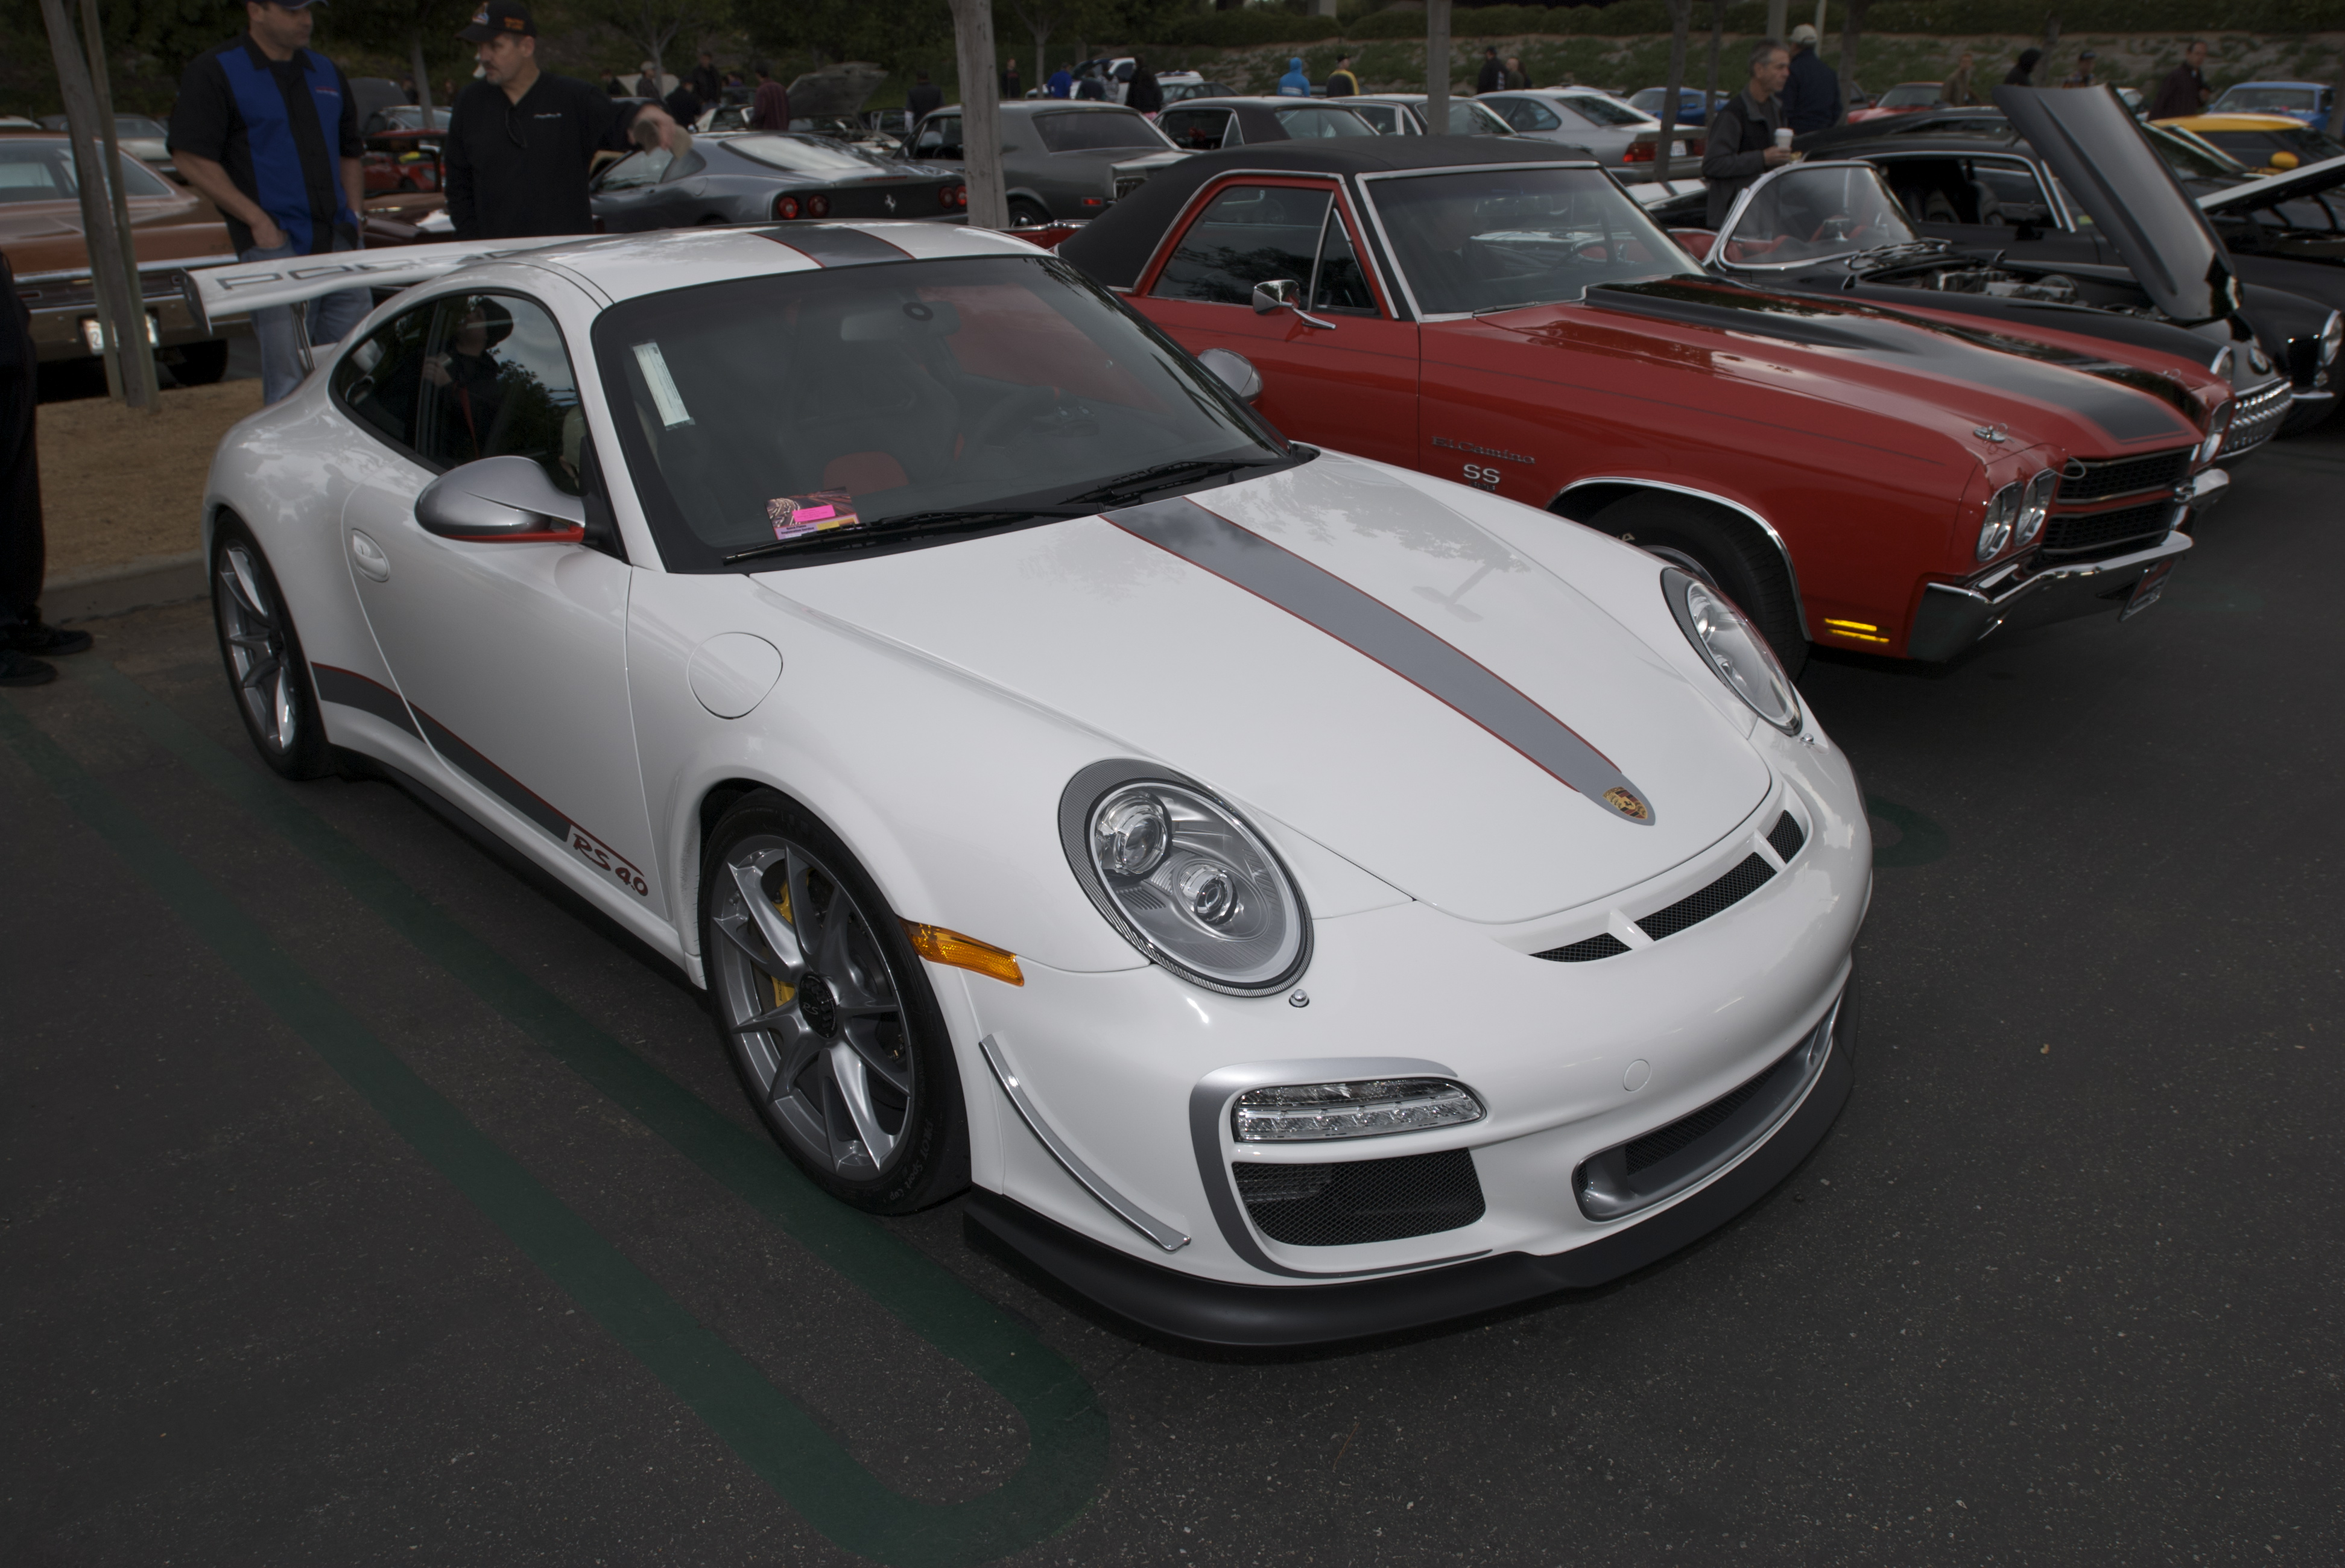 The elusive white Porsche GT3 RS4.0 finally captured, and more ...